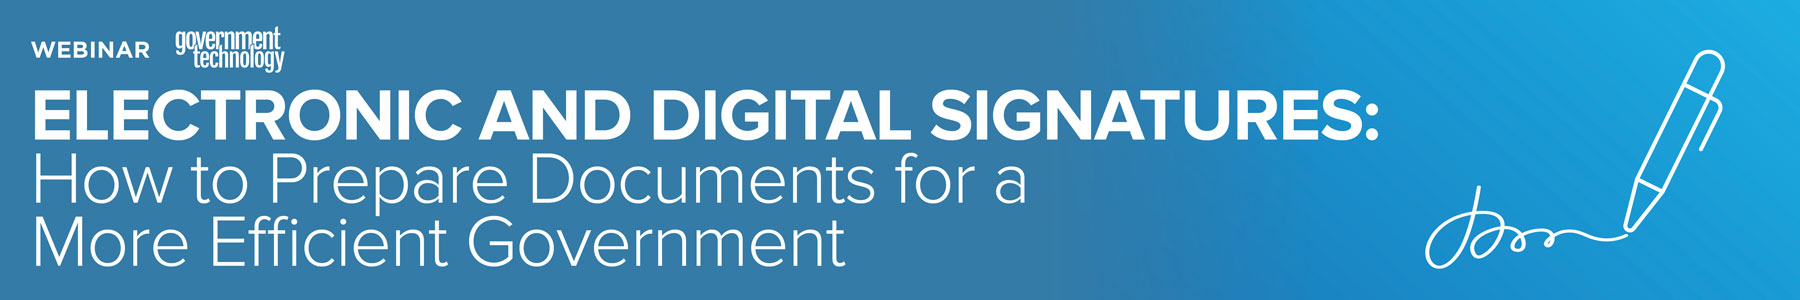 Electronic and Digital Signatures: How to Prepare Documents for a More Efficient Government